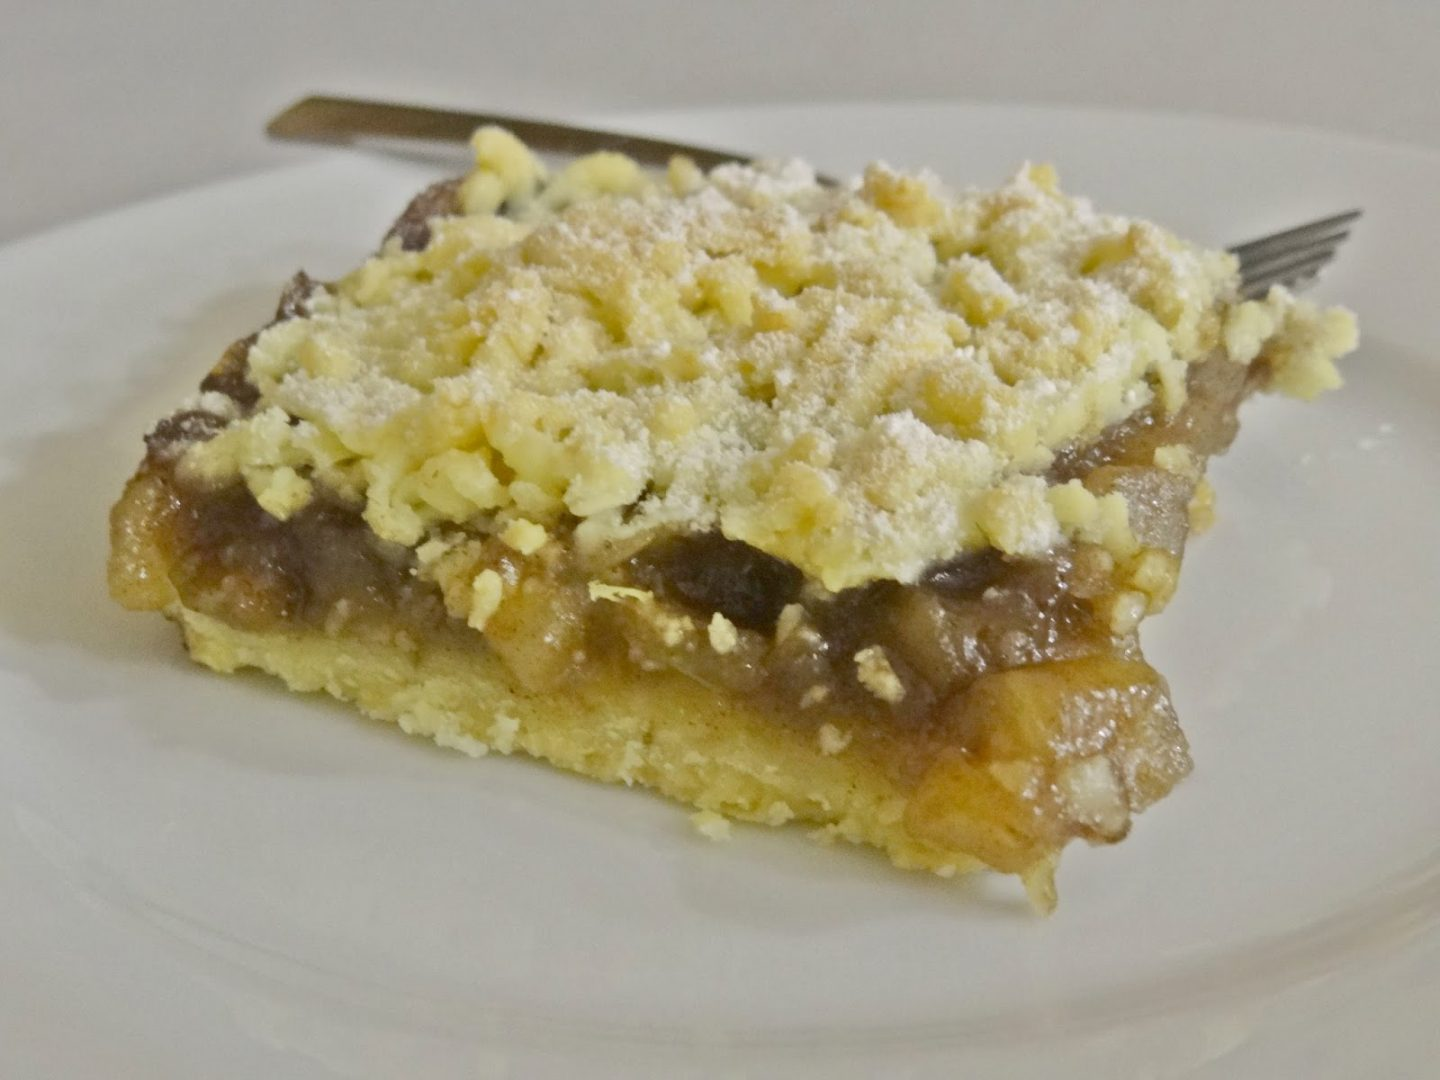 Cinamon Scented Crumble Apple Pie